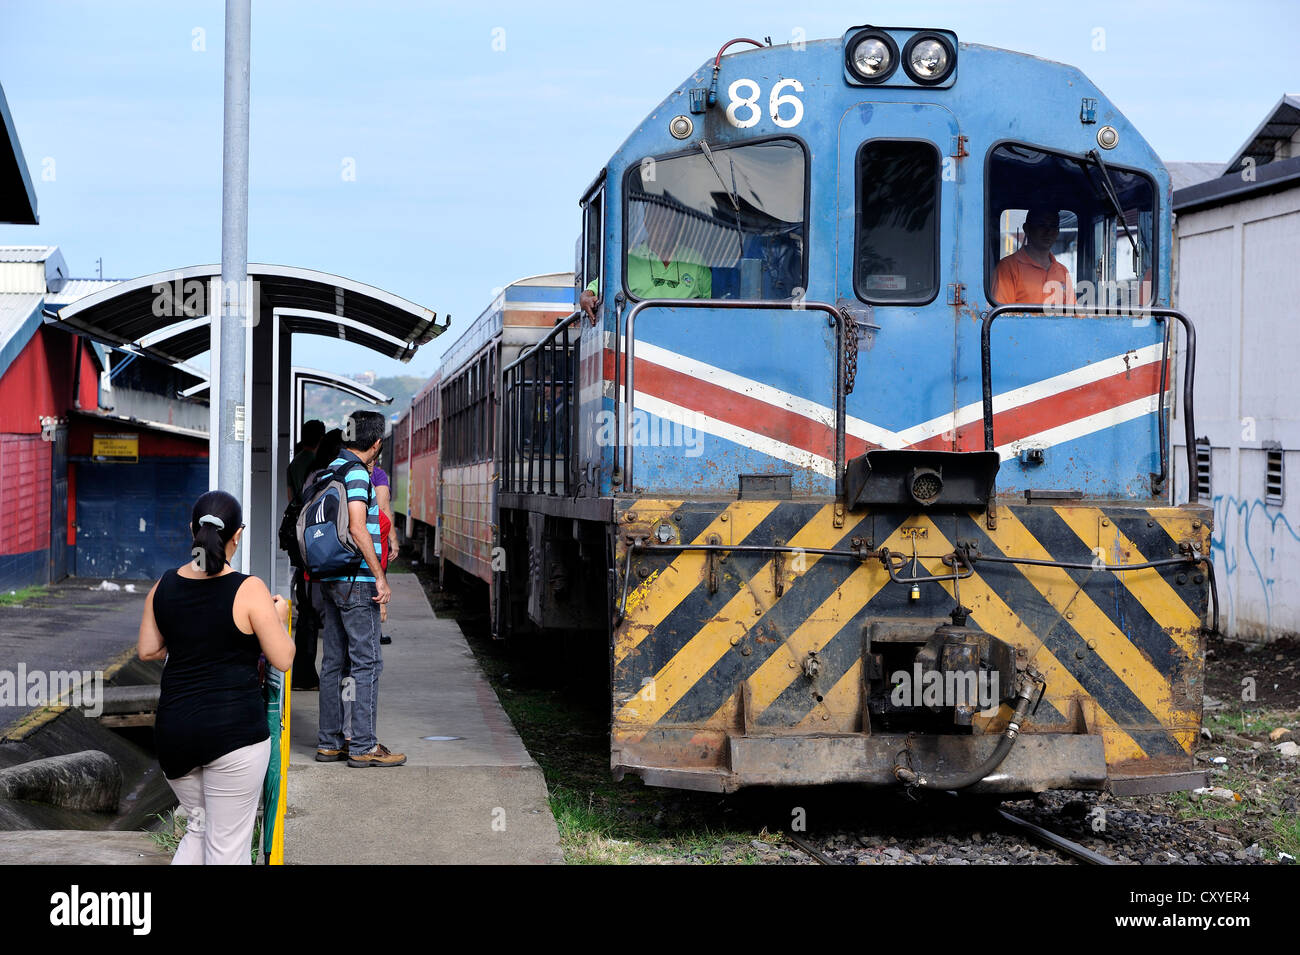 Commuter train with a diesel locomotive entering the station, San Jose, Costa Rica, Latin America, Central America - Stock Image